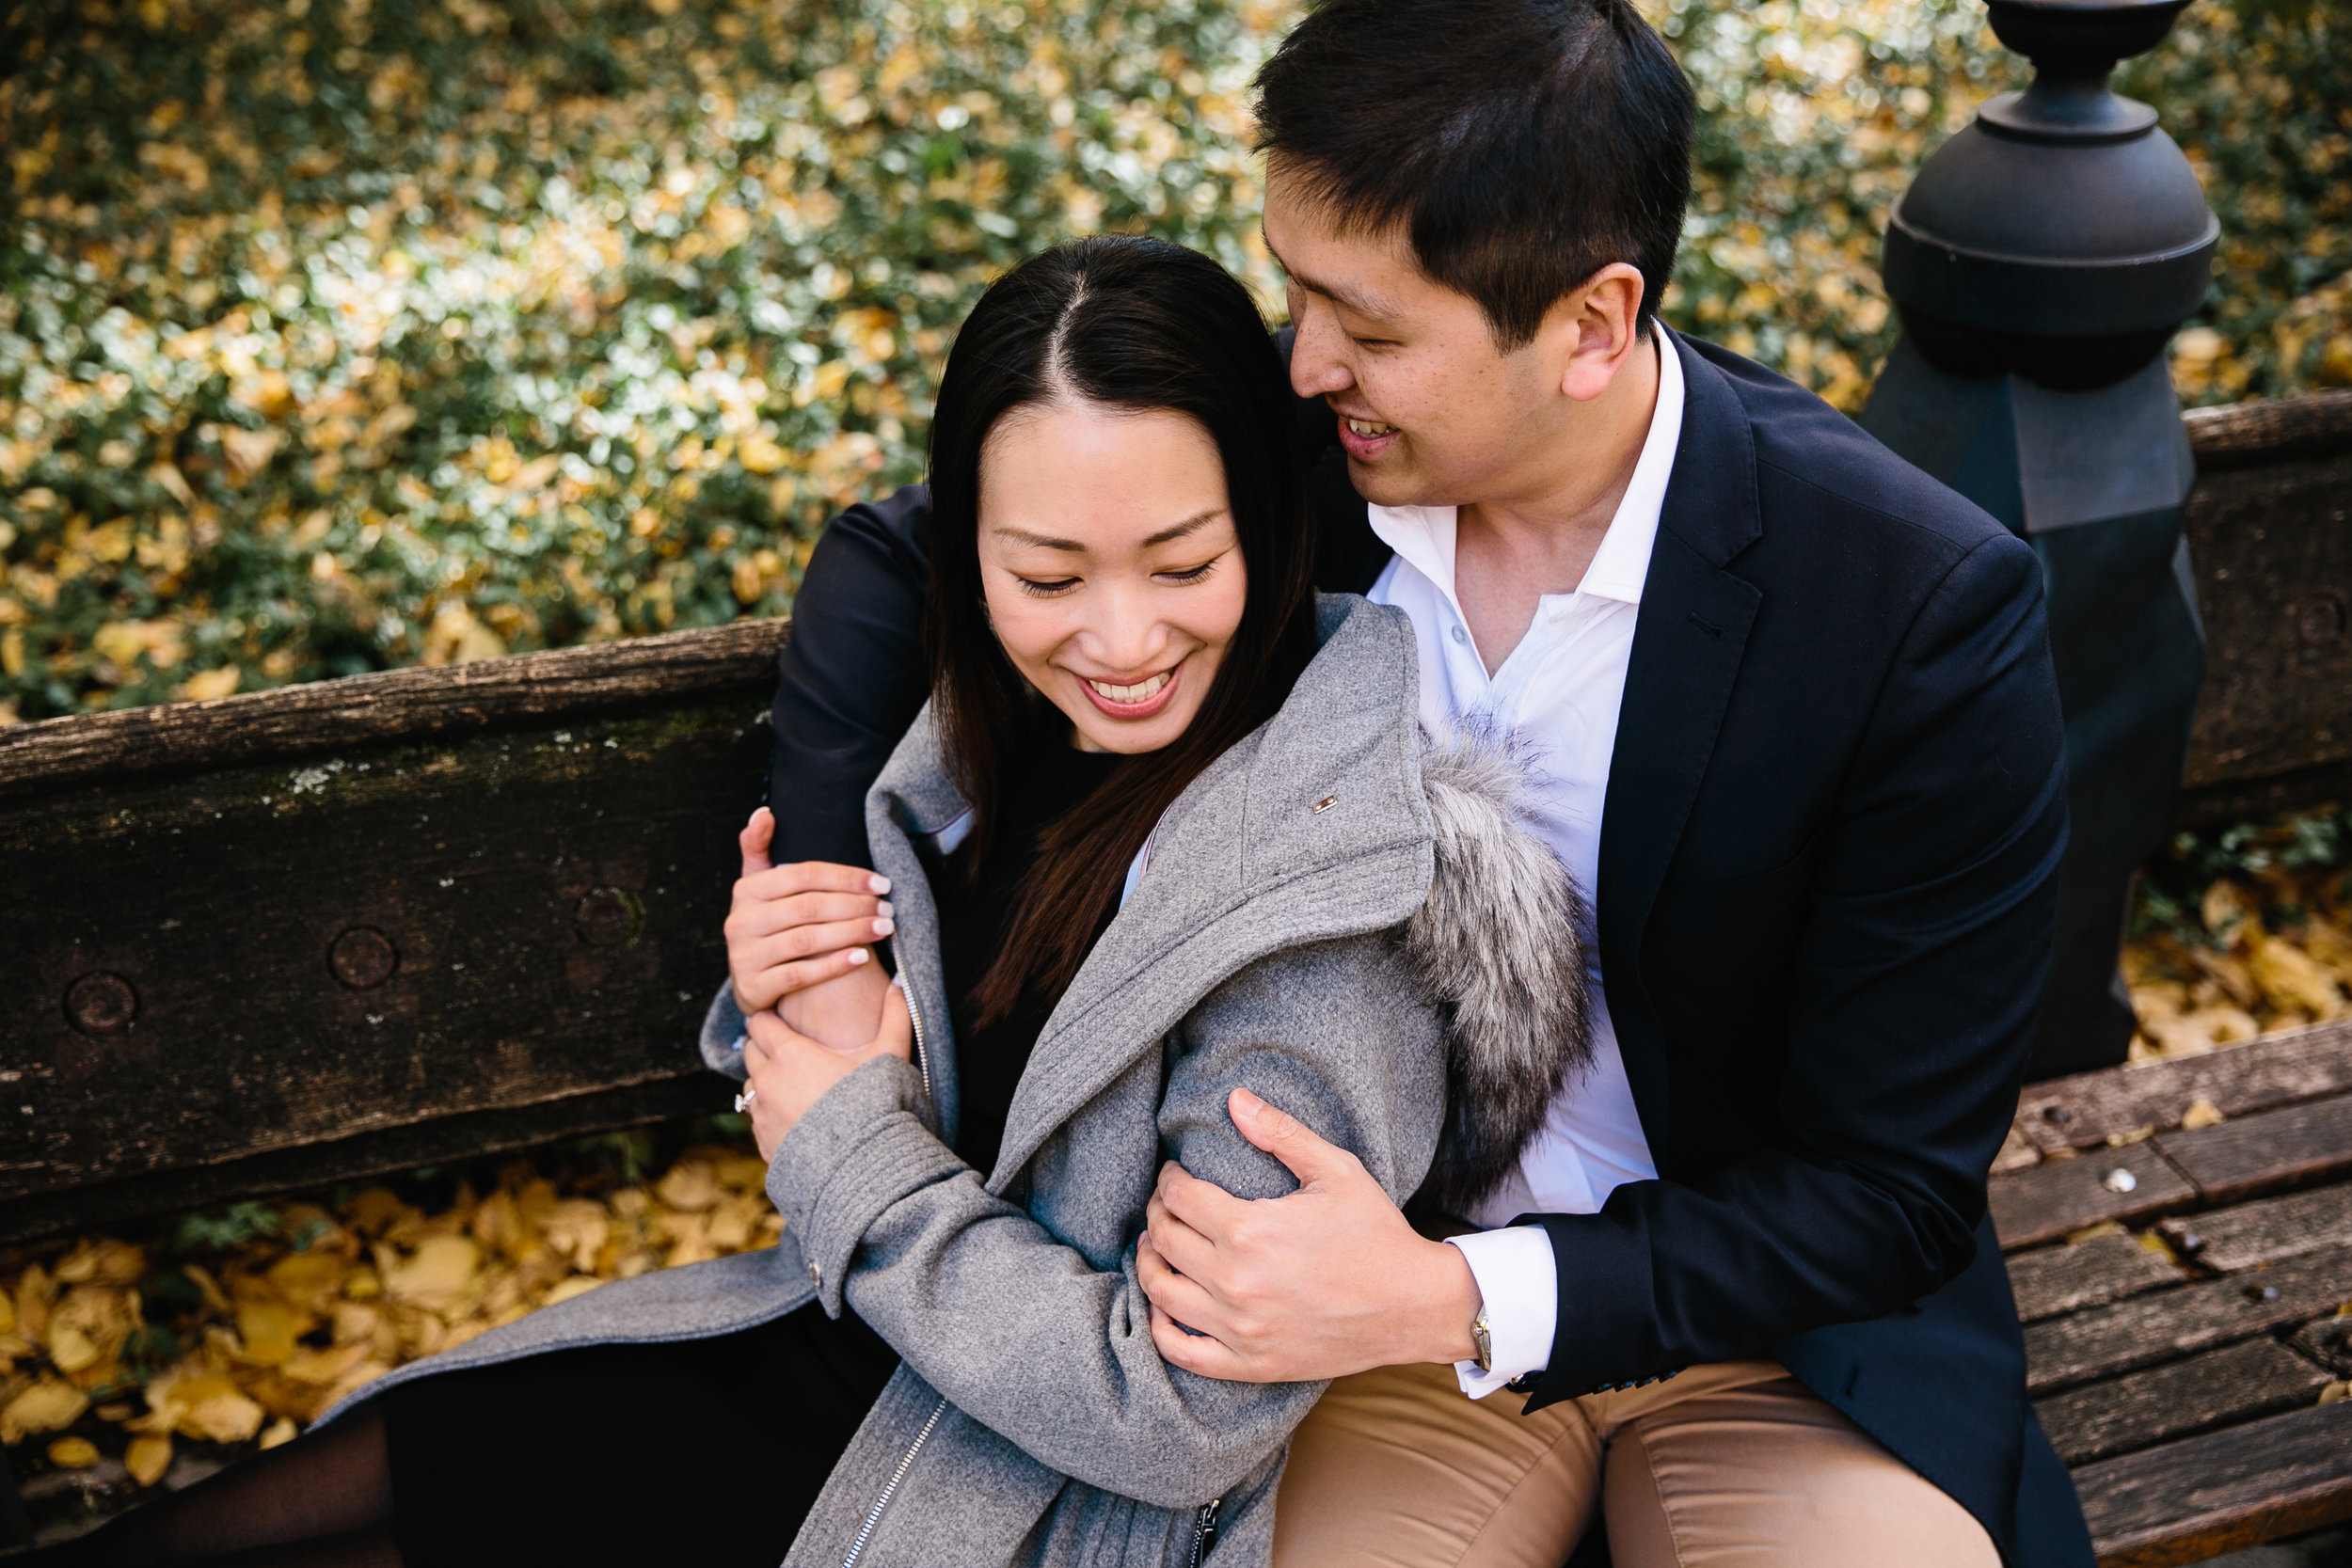 celestehernandez - nyc-central park engagement012.jpg